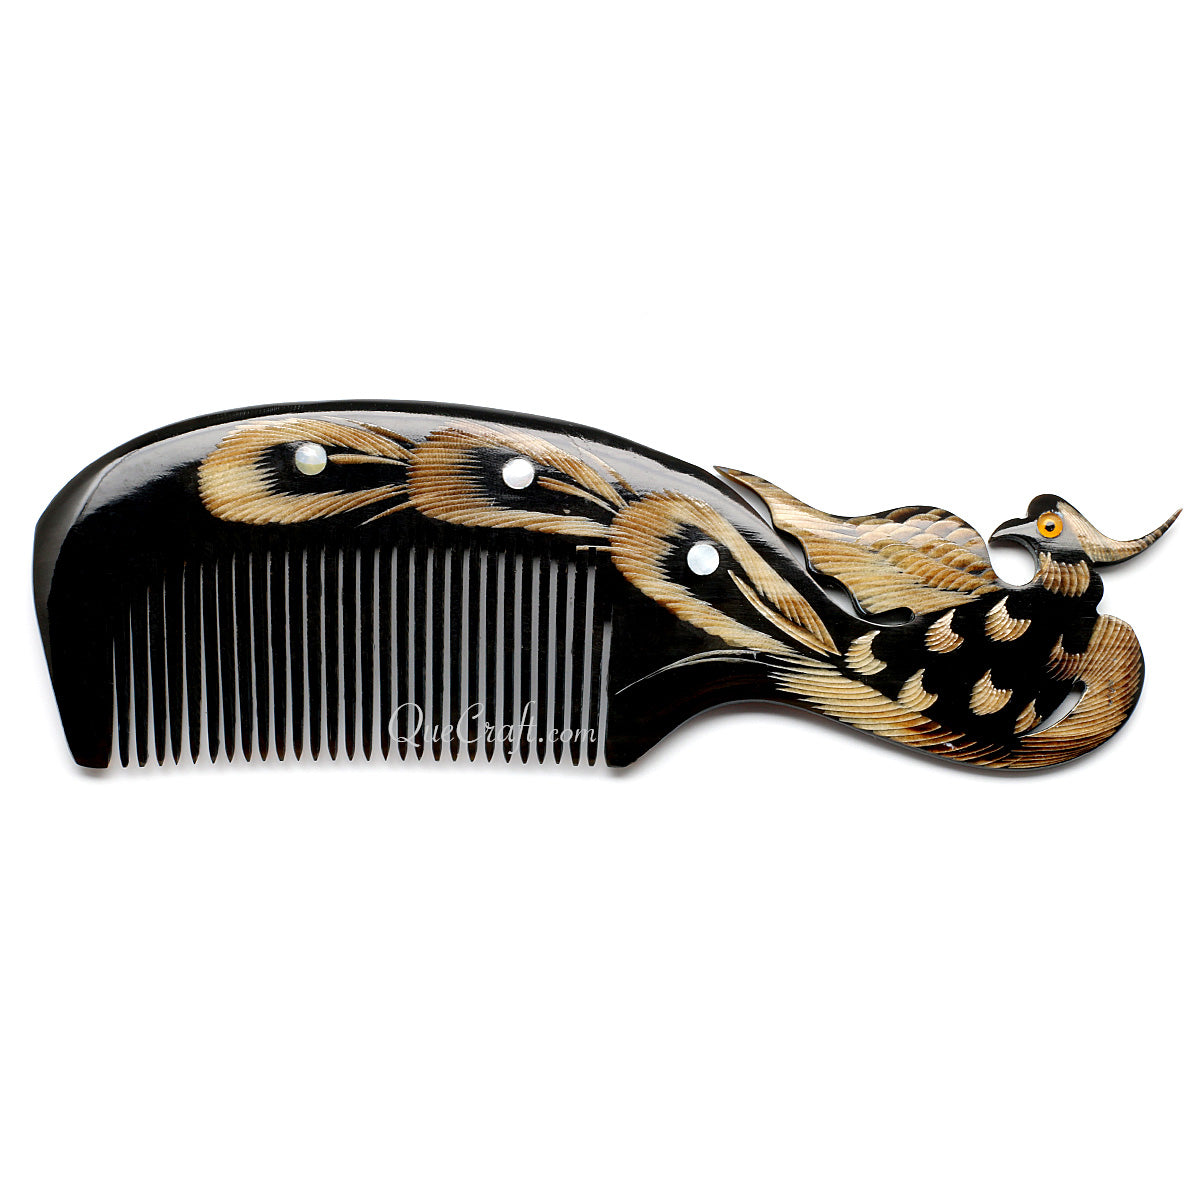 Horn & Shell Hair Comb #10690